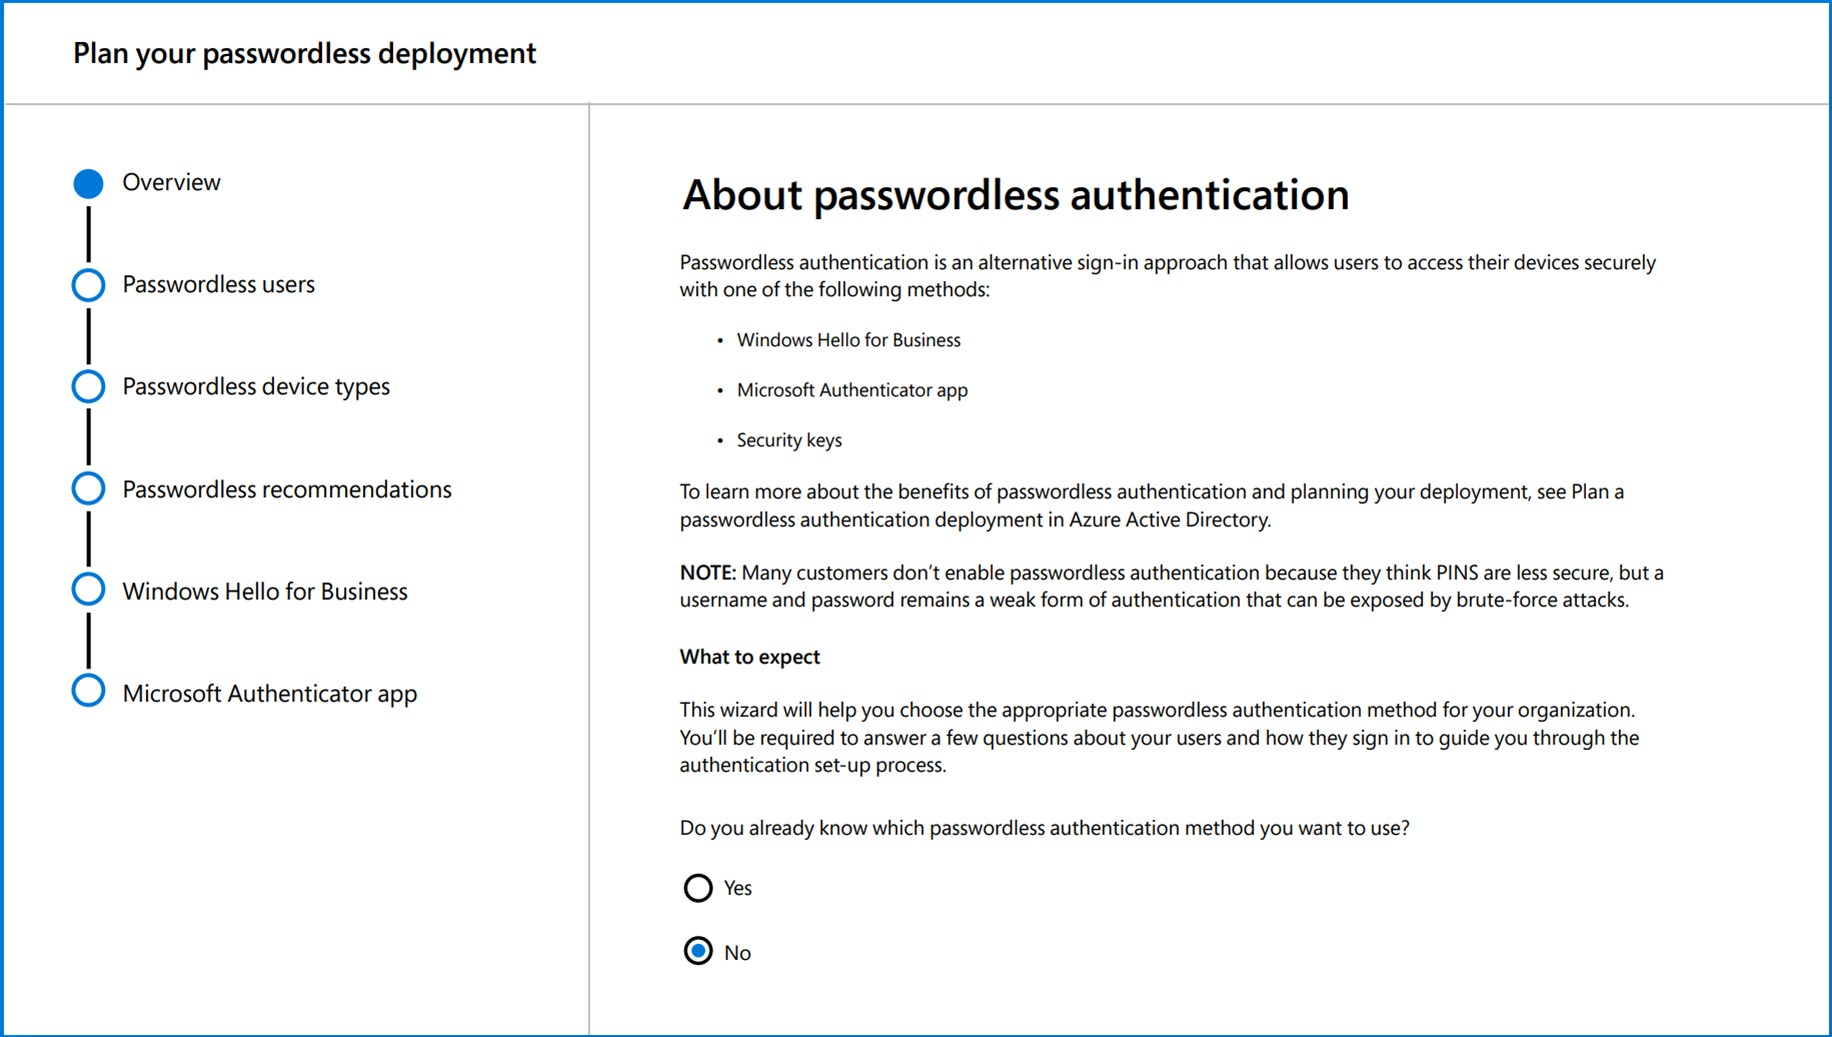 Password authentication sign in approaches include Windows Hello for Business, the Microsoft Authenticator App, and Security Keys.